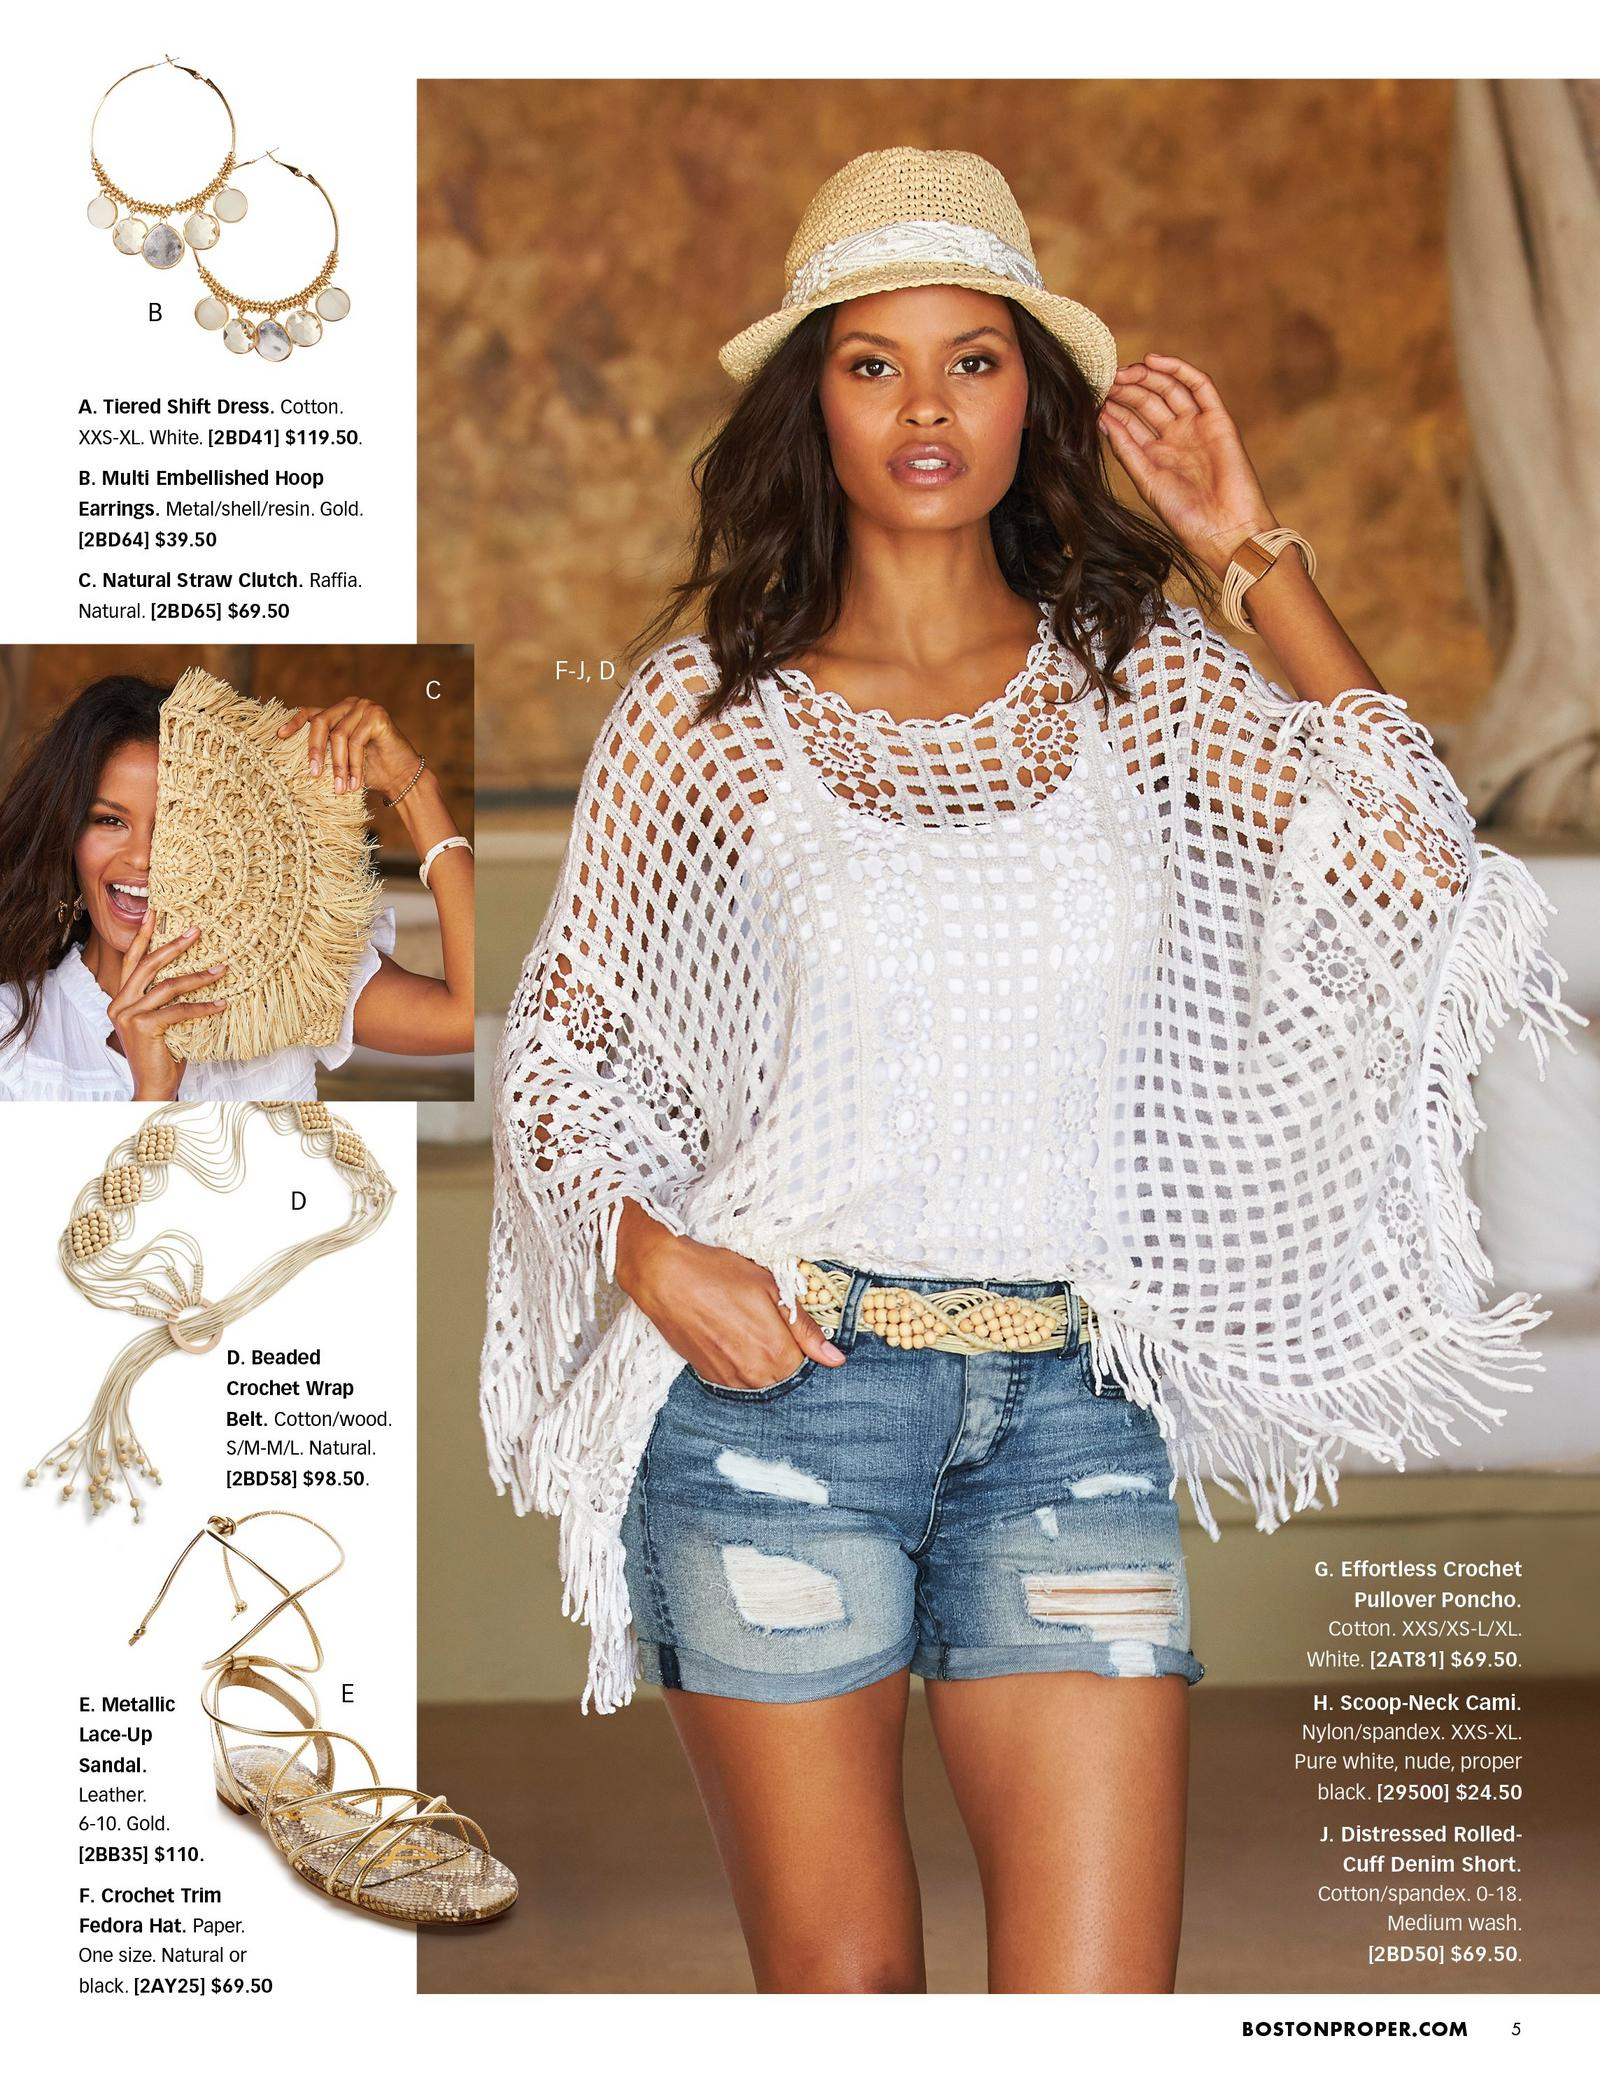 model wearing a white crochet pullover poncho, white tank top, beaded crochet belt, ripped denim shorts, and a straw hat. left panel showing embellished hoop earrings, straw clutch, beaded crochet belt, and gold lace-up sandals.